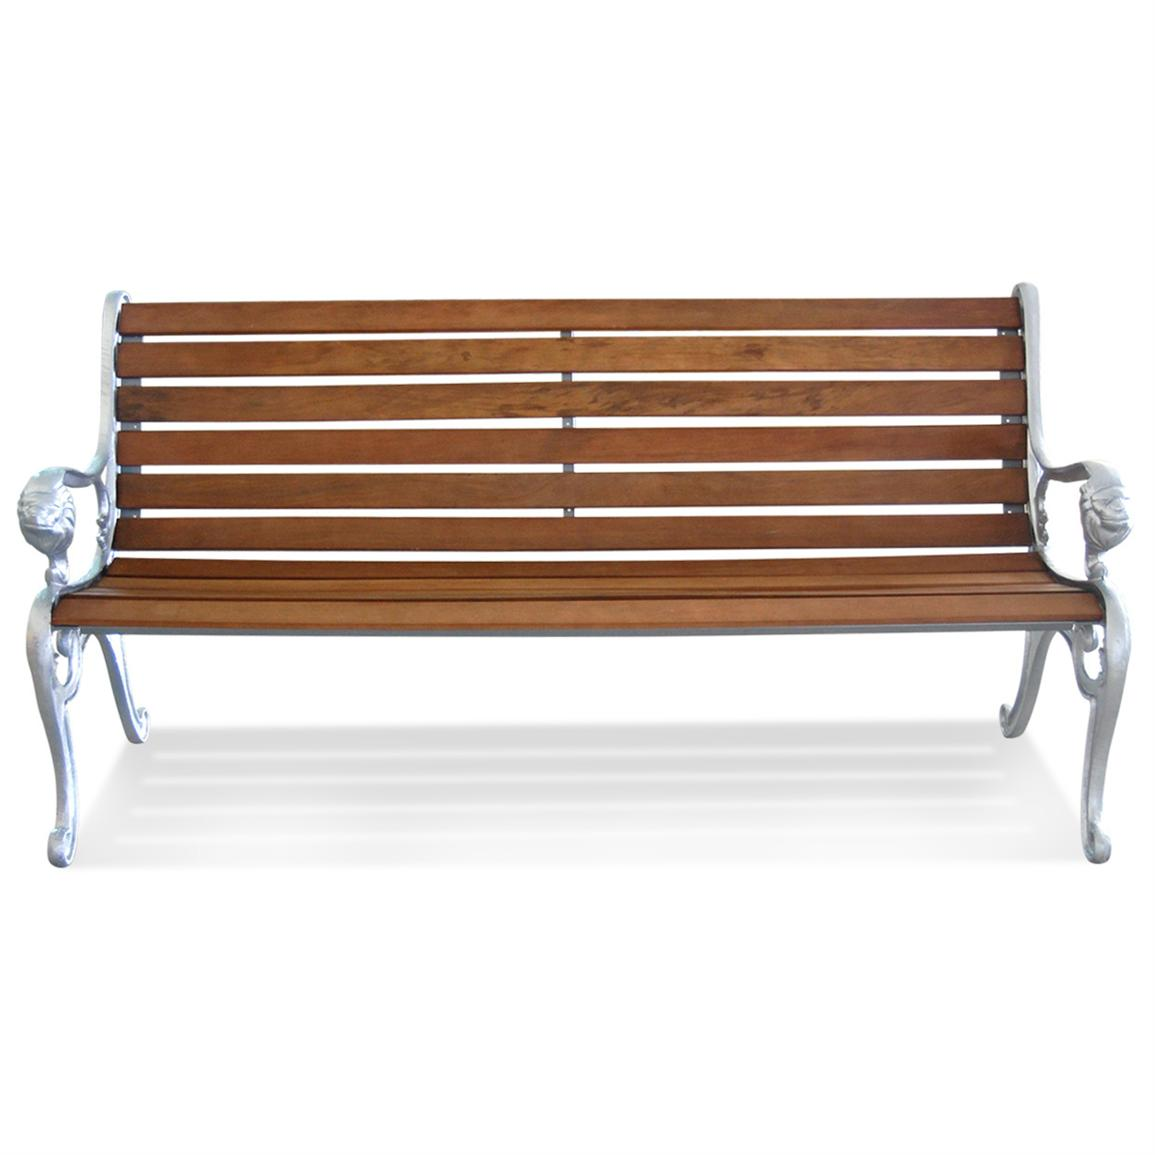 Lion Park Bench-Aluminium Ends-Lion Park Bench-Aluminium Ends-7